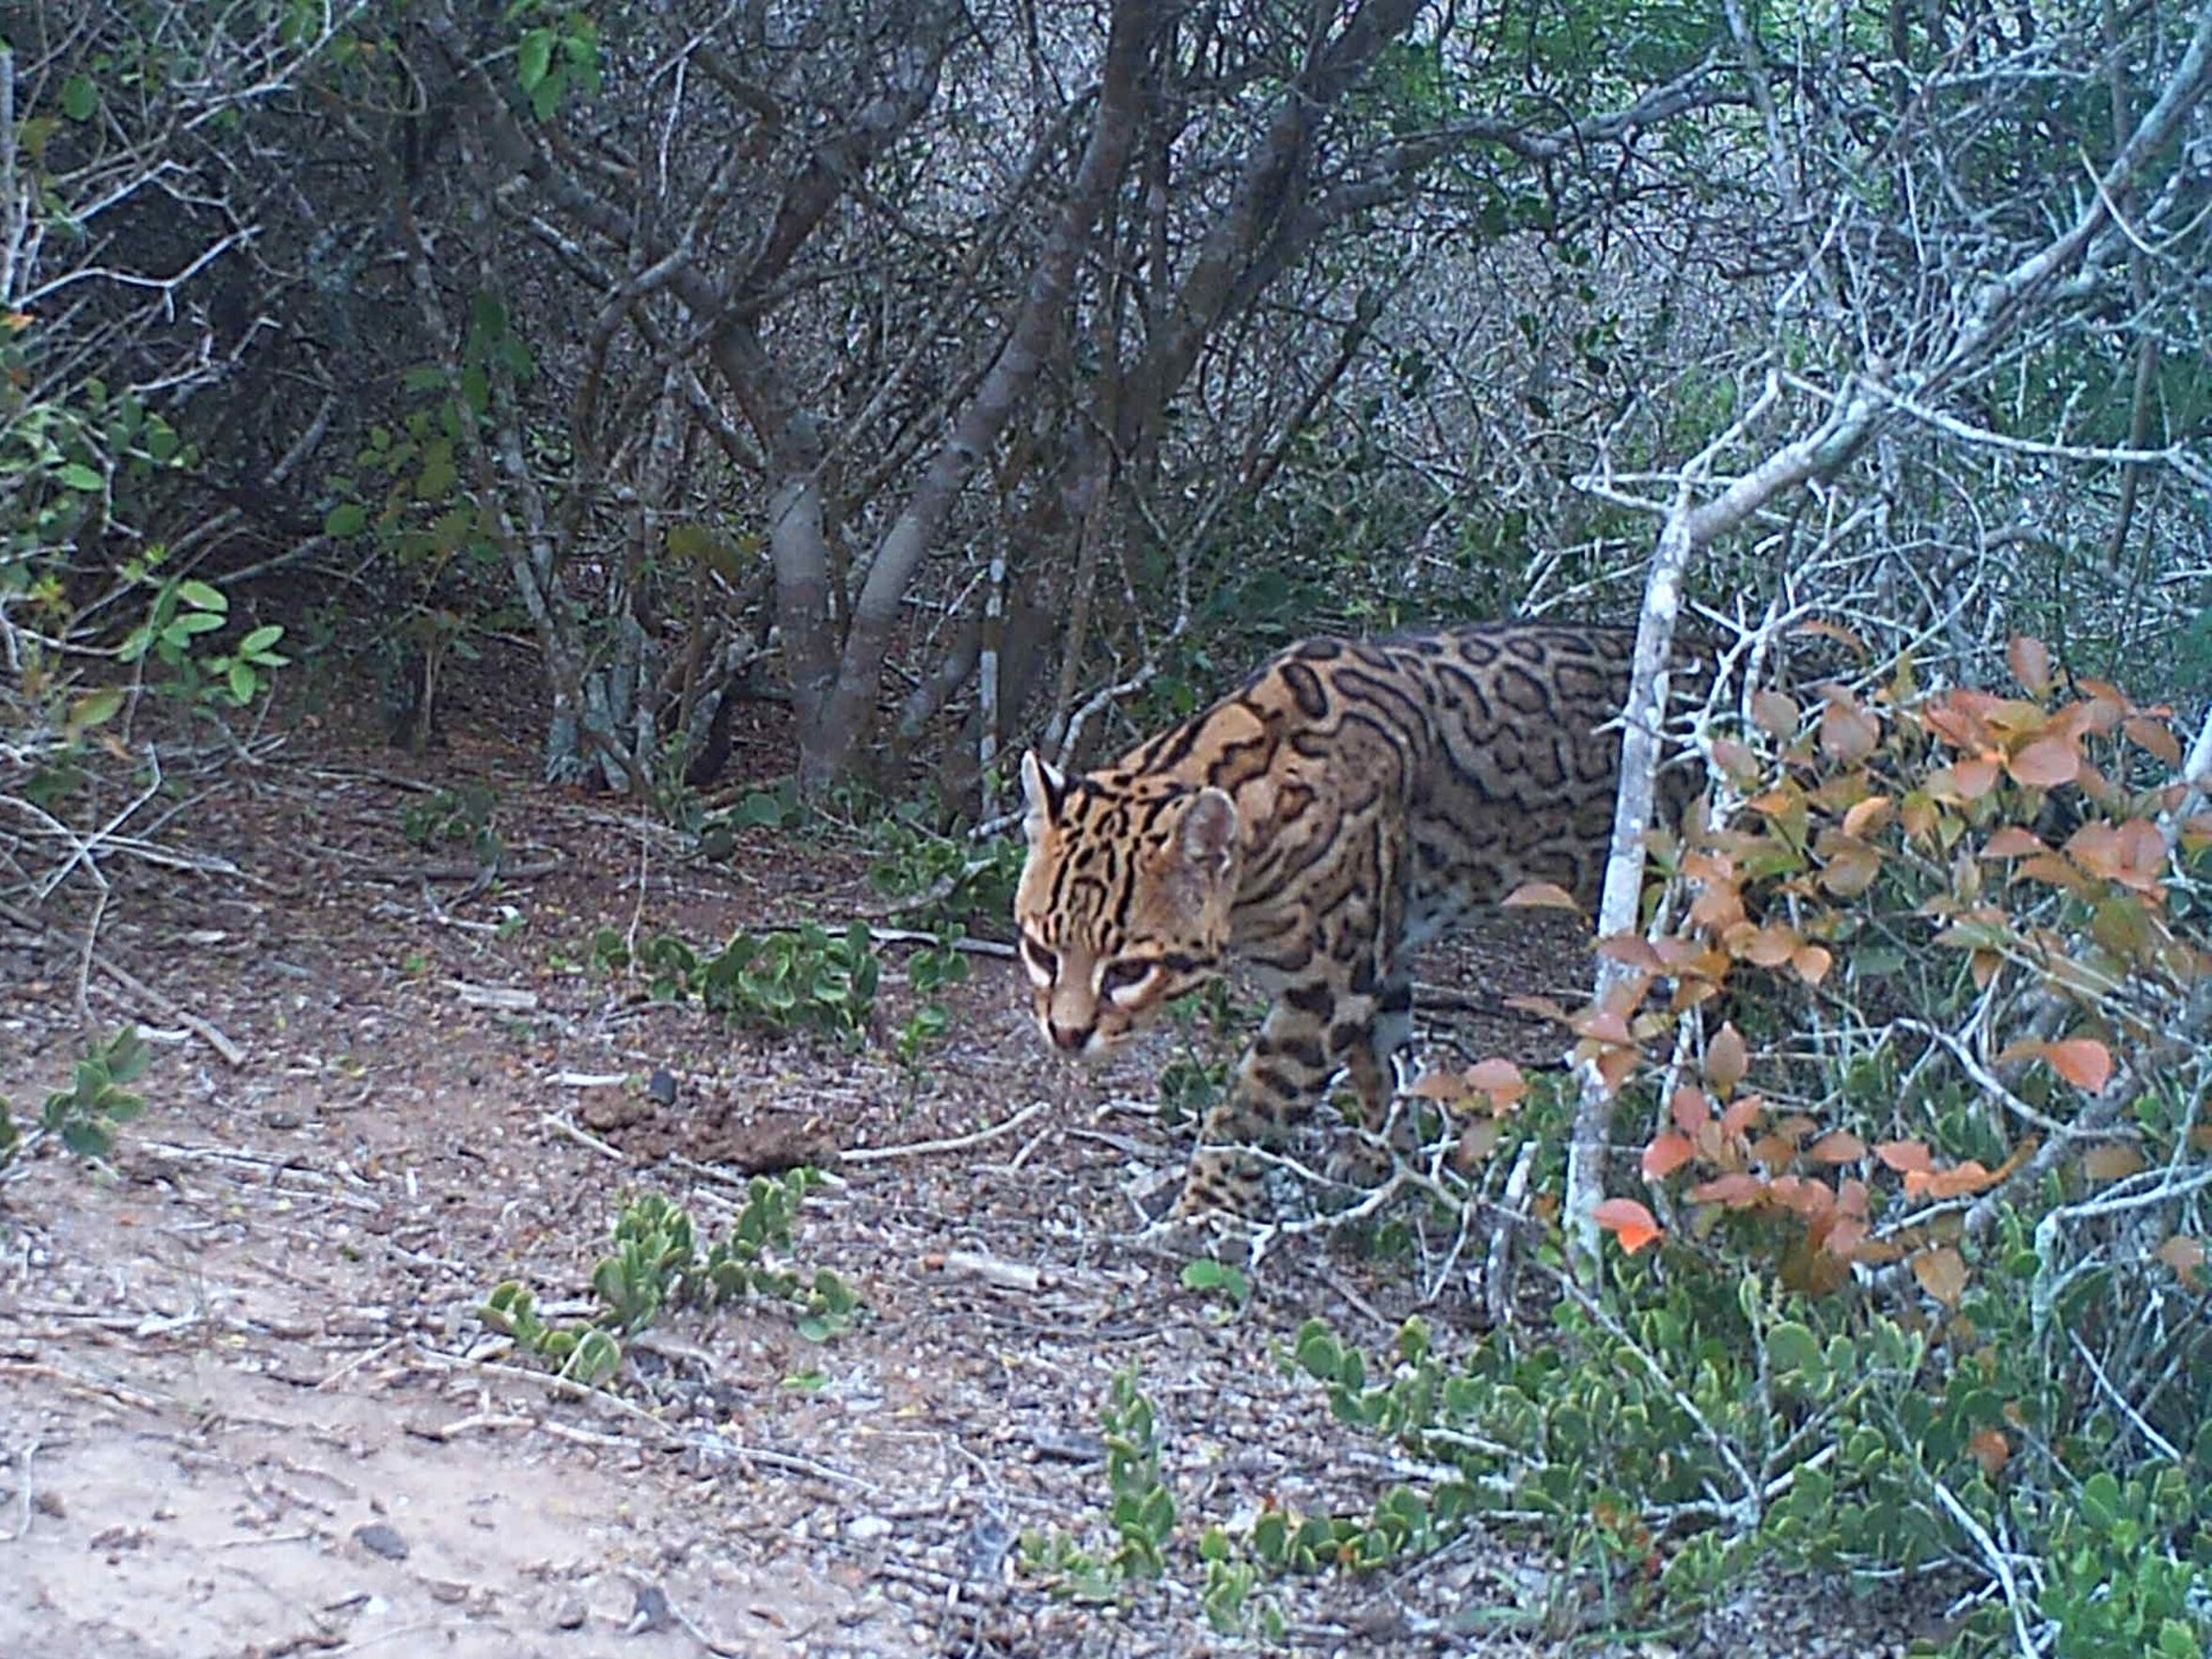 A male ocelot male at Laguna Atascosa National Wildlife Refuge in January 2014.